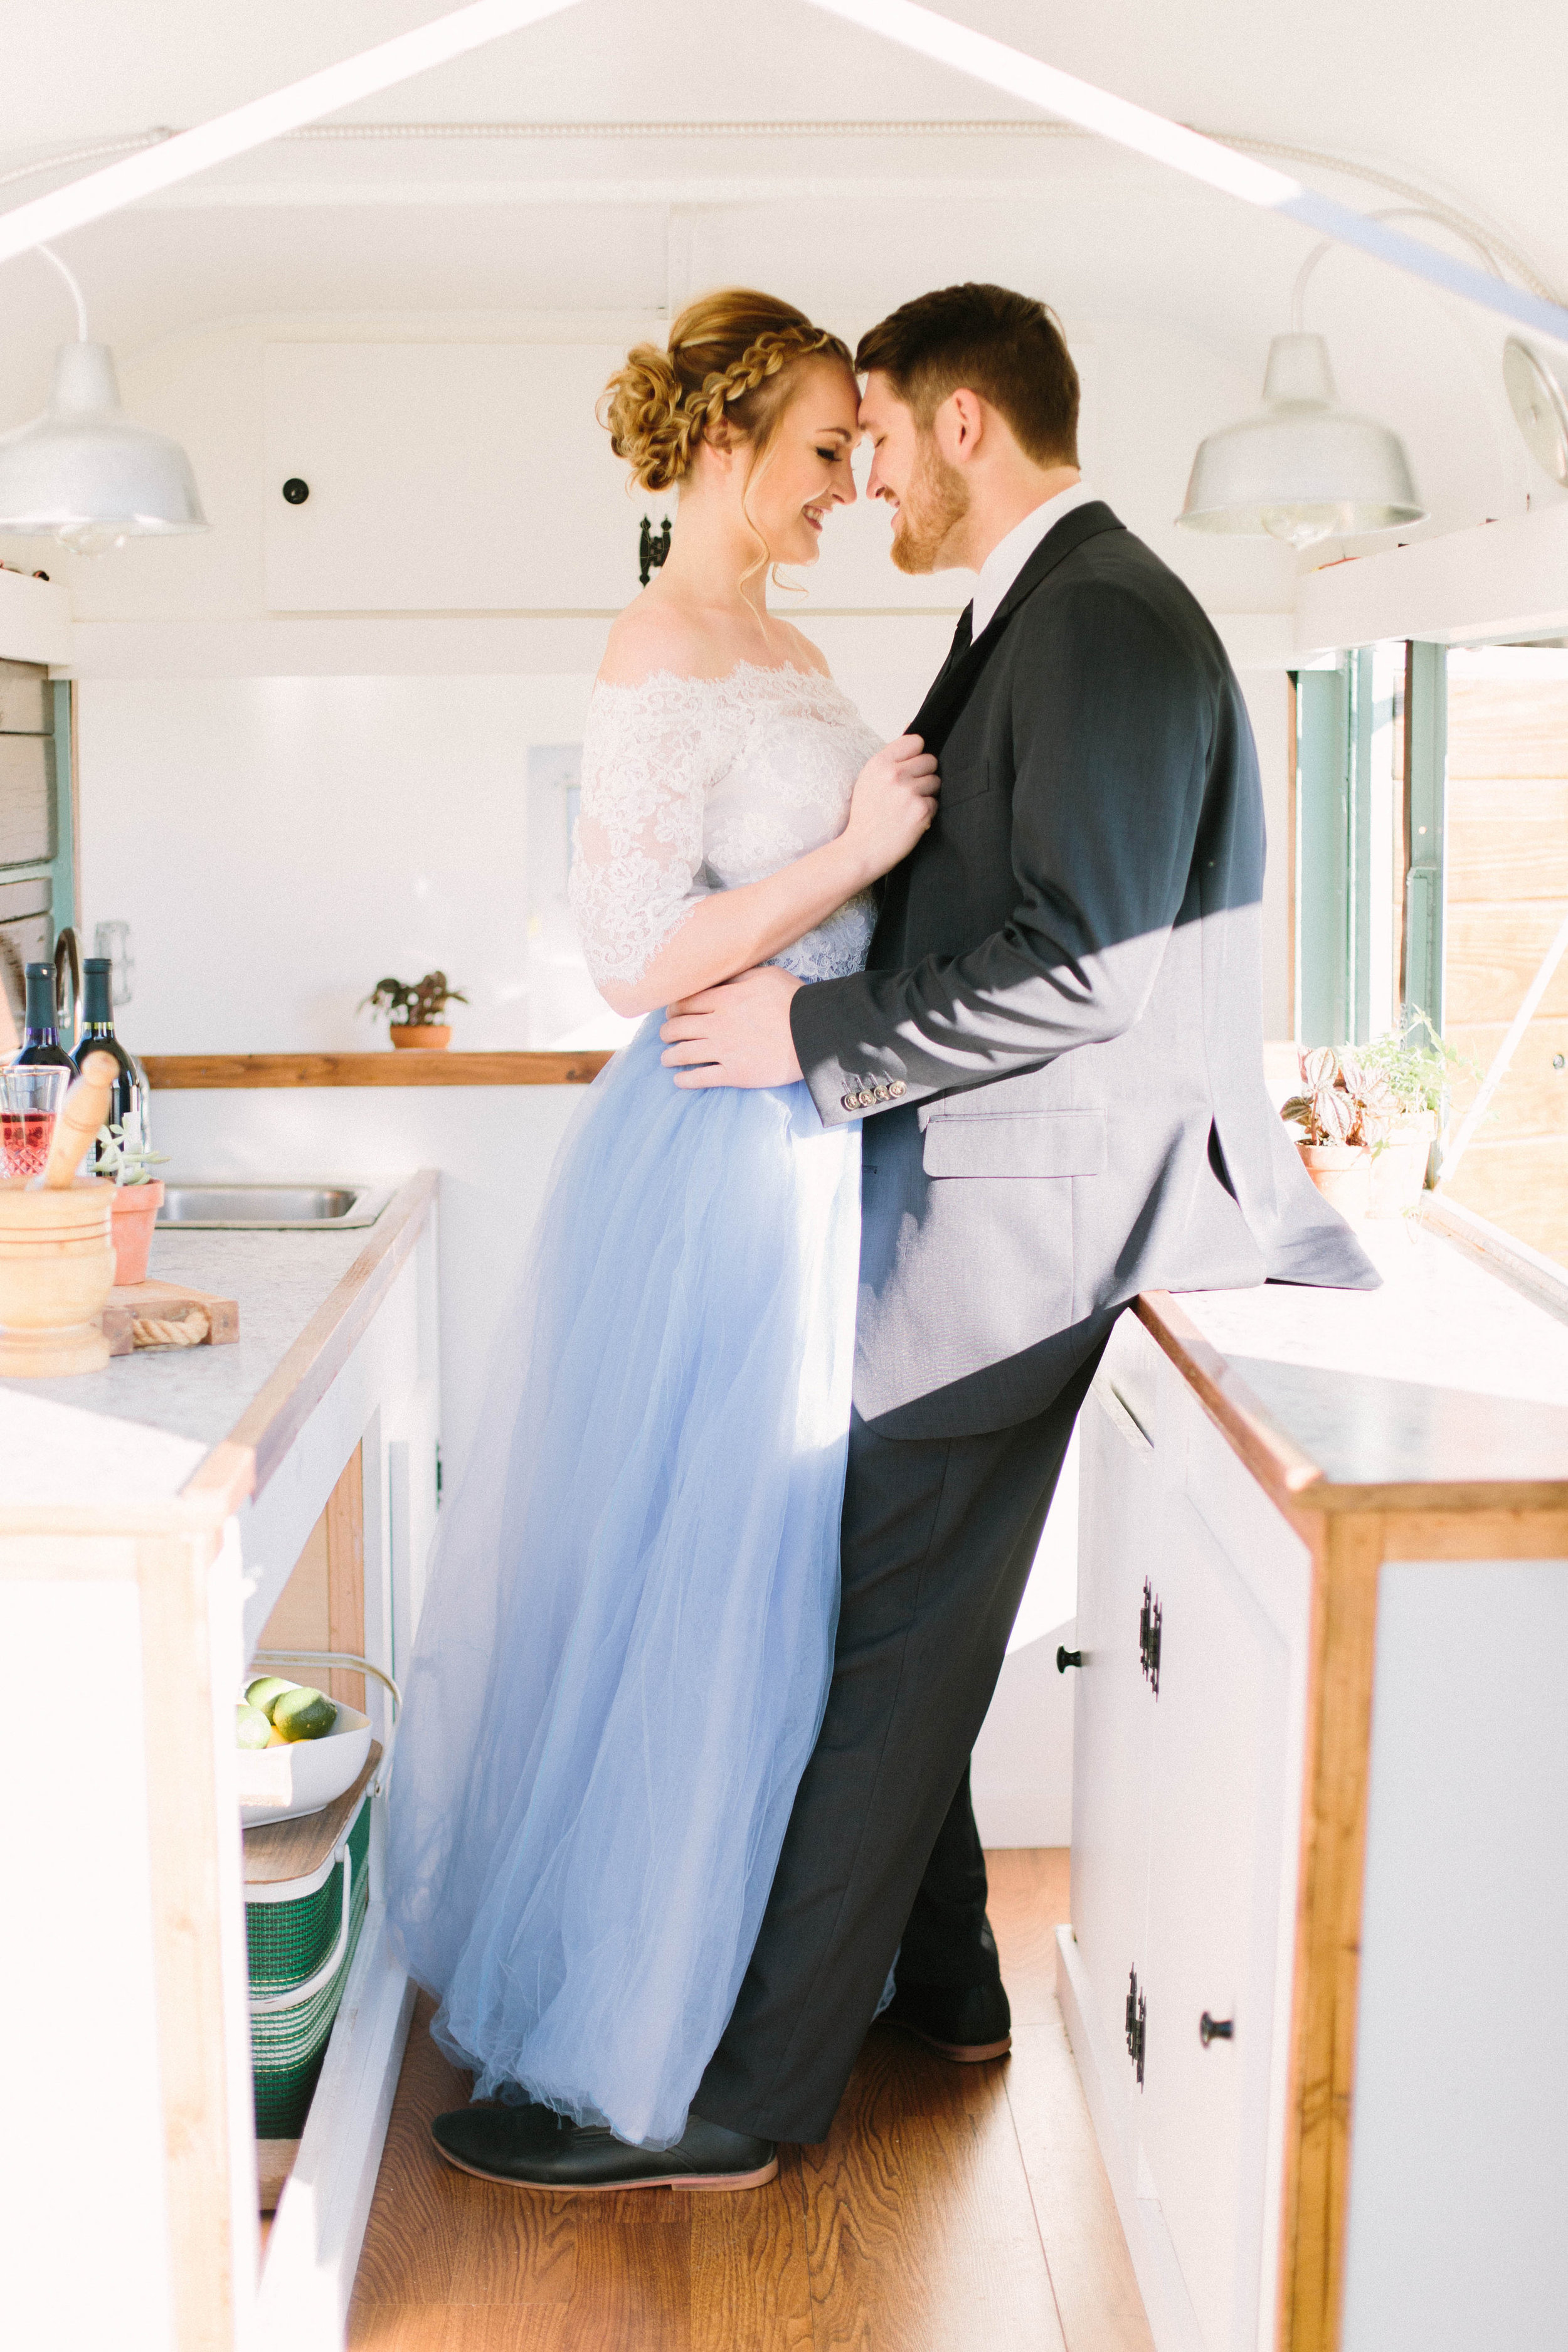 2017 Styled Shoot At The Pour Vineyard Veronica Young Photog-0080.jpg